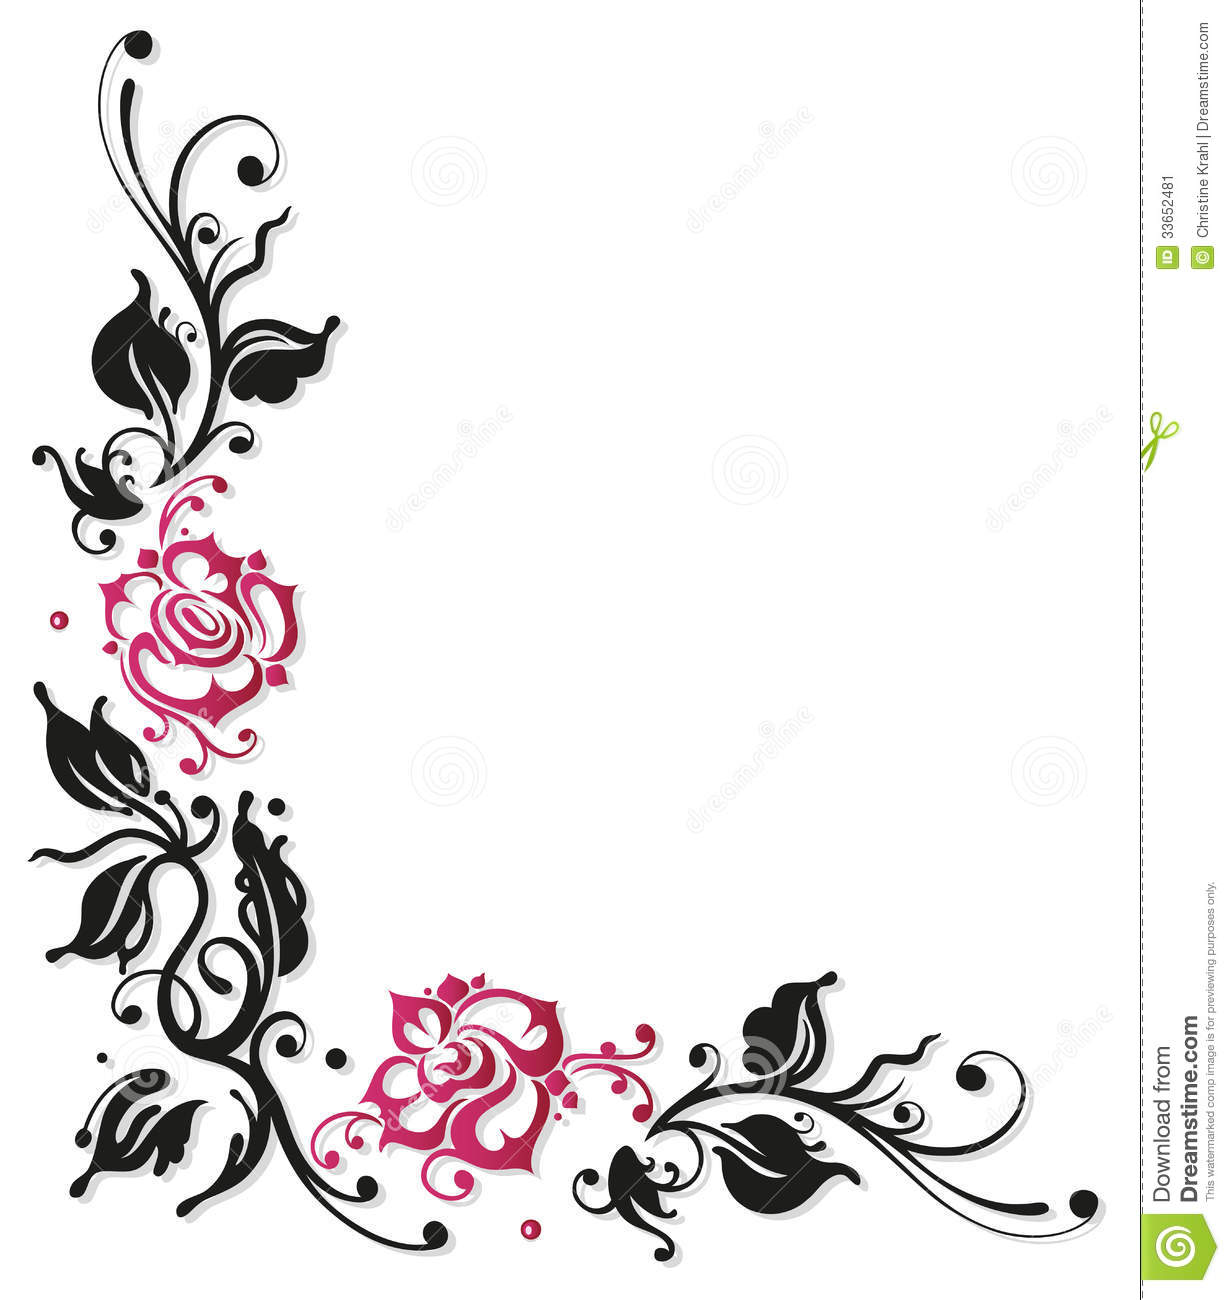 black and white flowers borders clipart clipart suggest